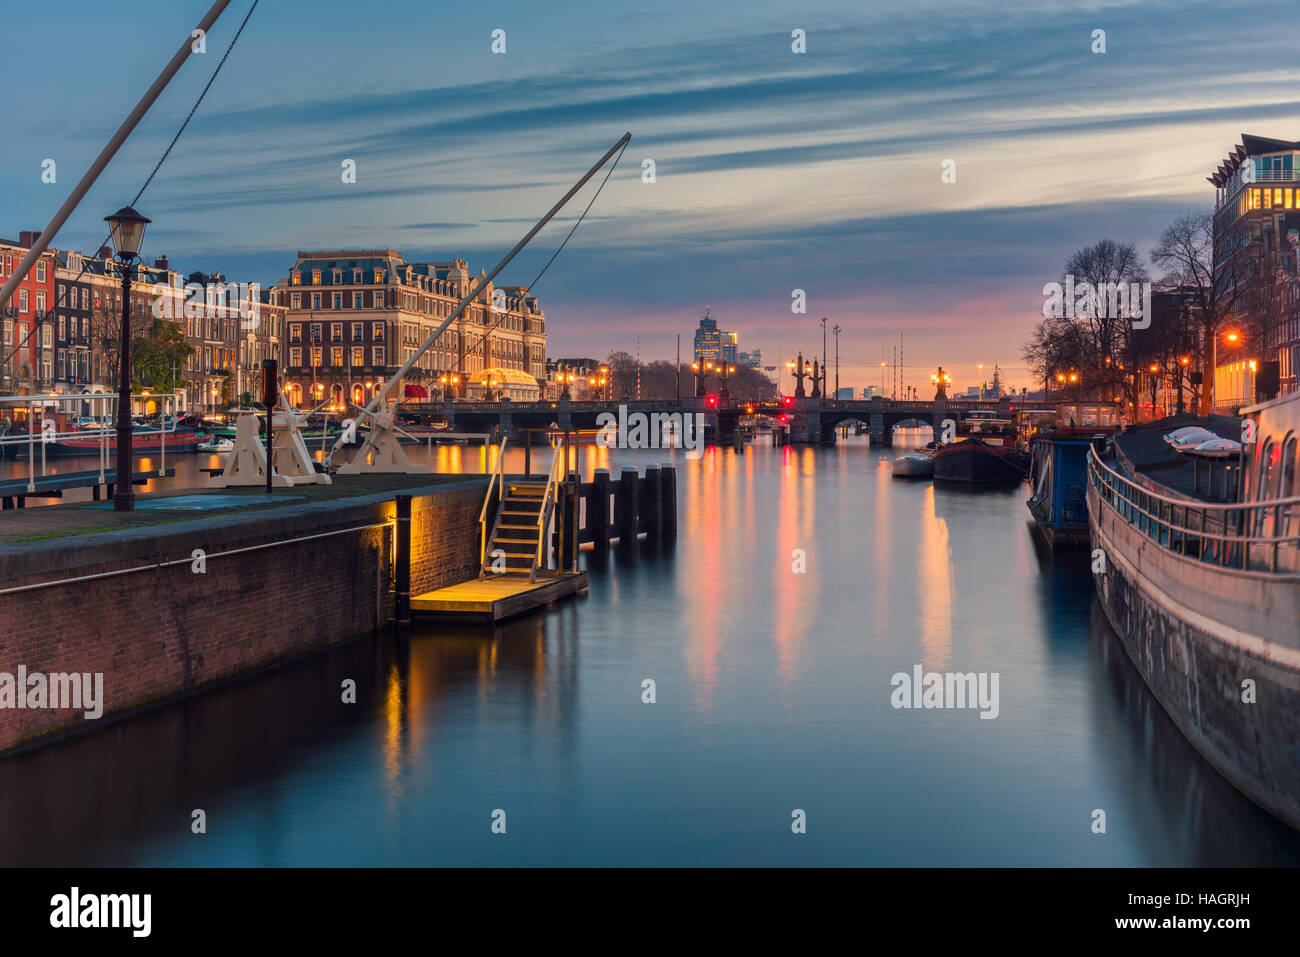 Amstel River and surroundings in Amsterdam Netherlands - Stock Image